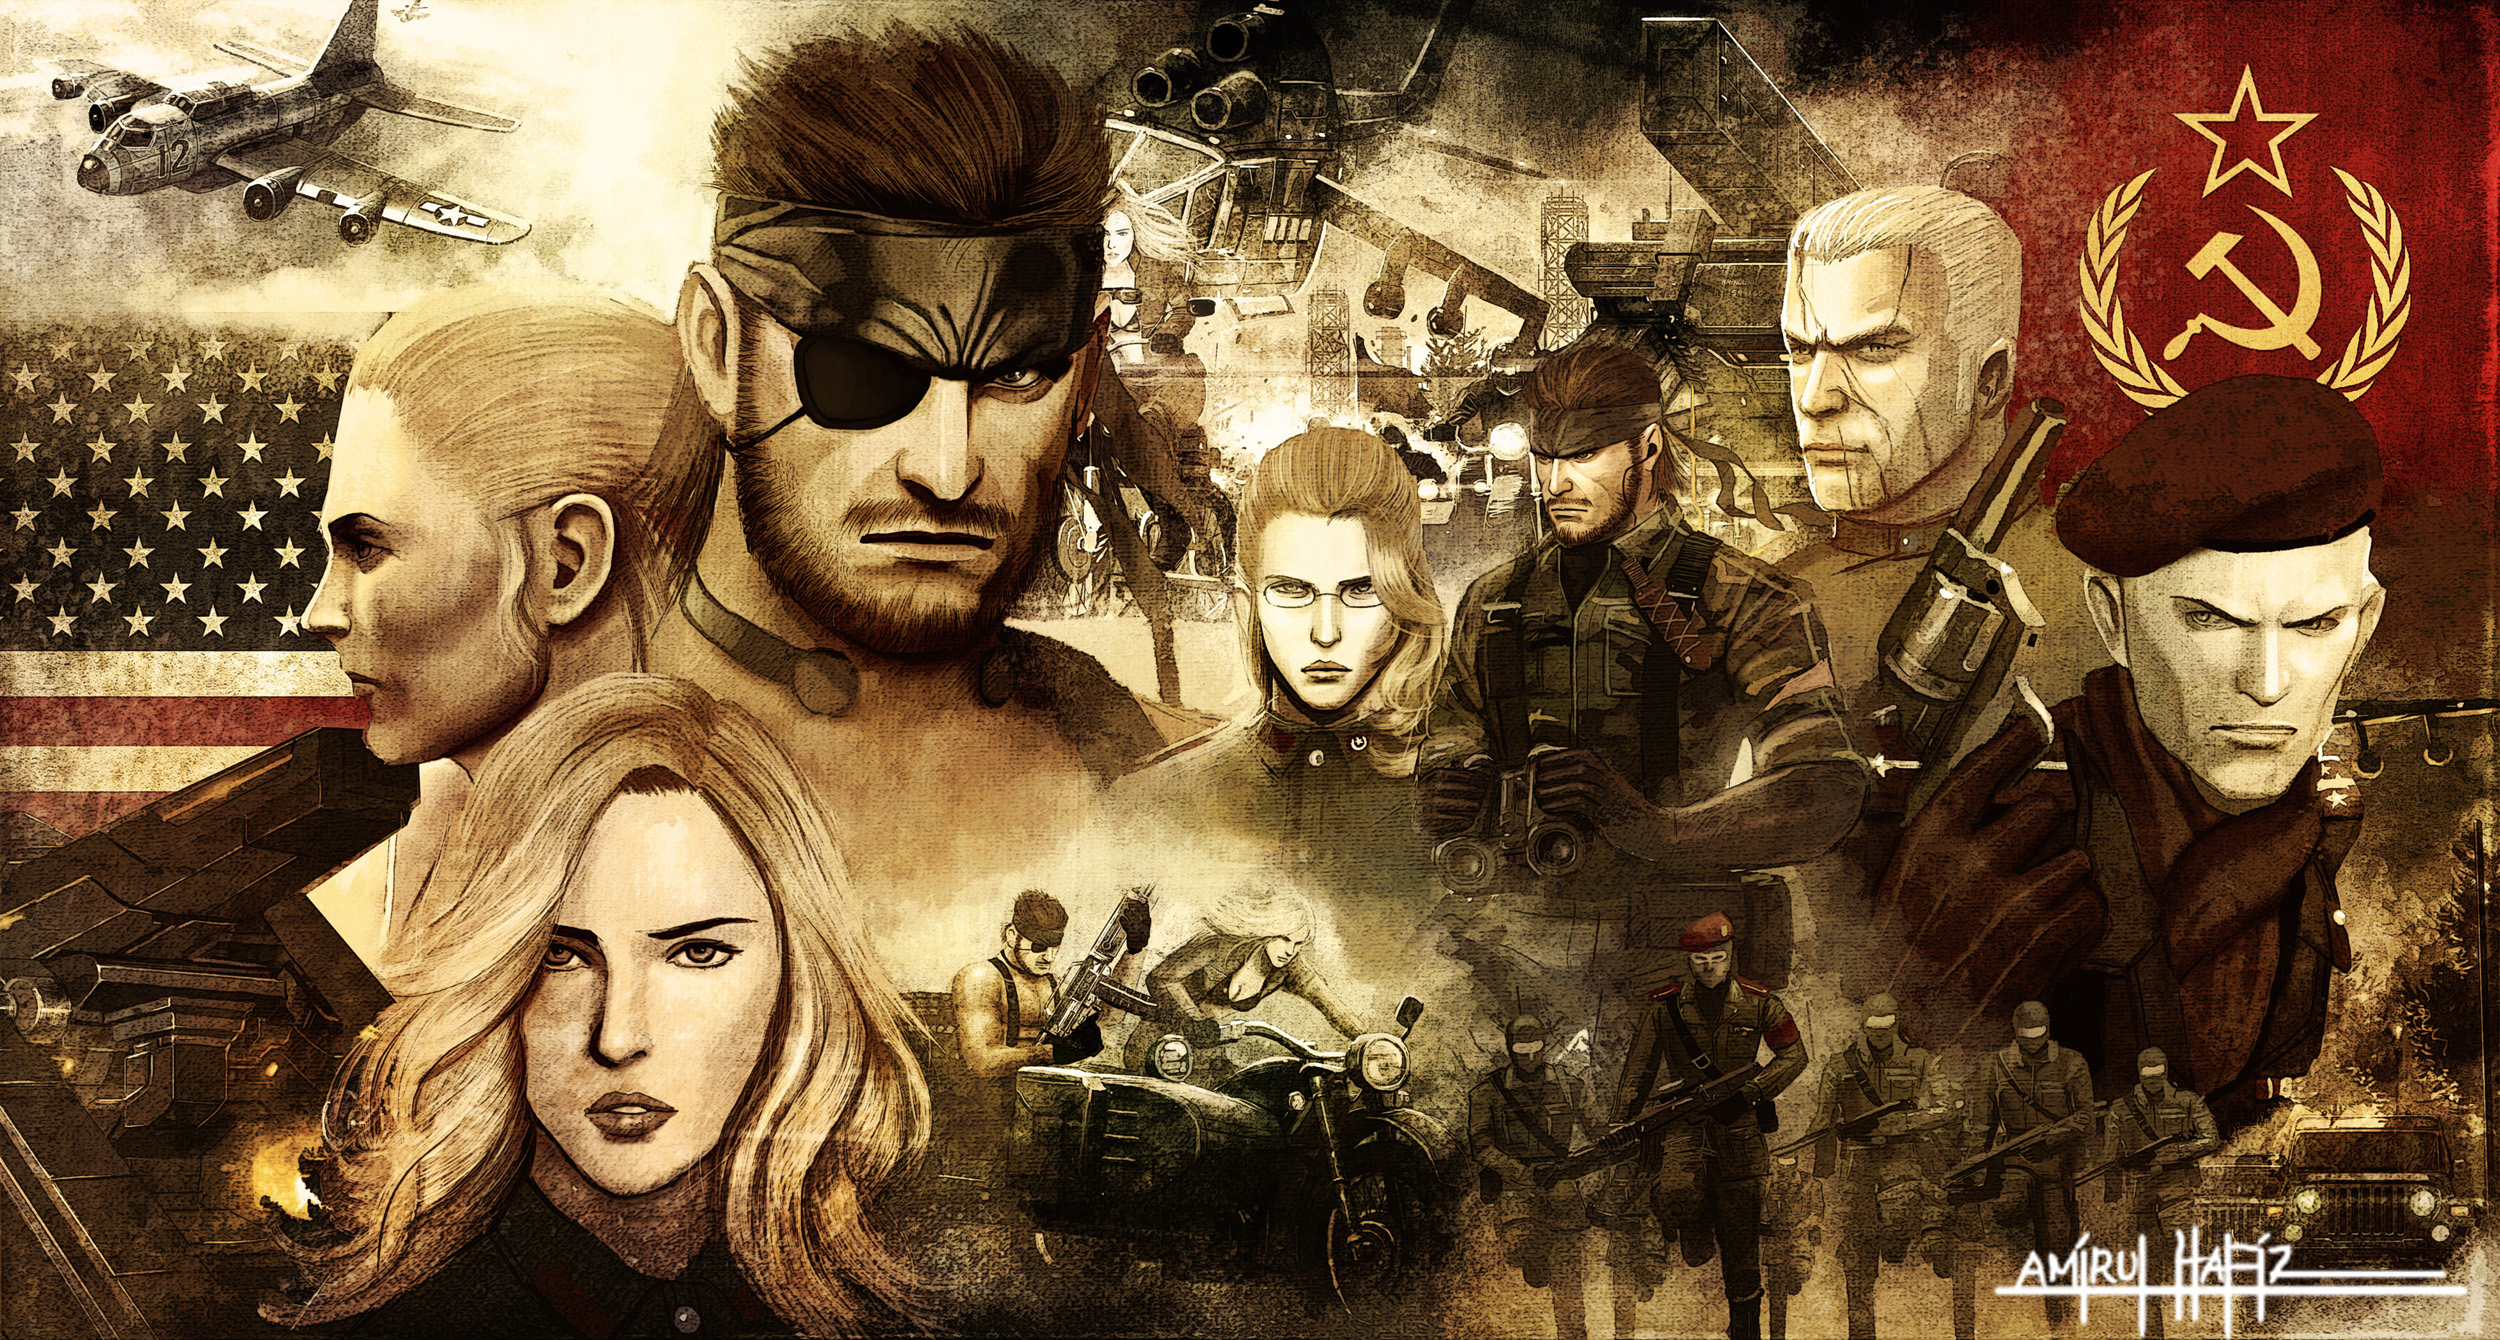 metal_gear_solid_3_snake_eater_poster_by_amirulhafiz-d5d1hd7.jpg - Metal Gear Solid 3: Snake Eater